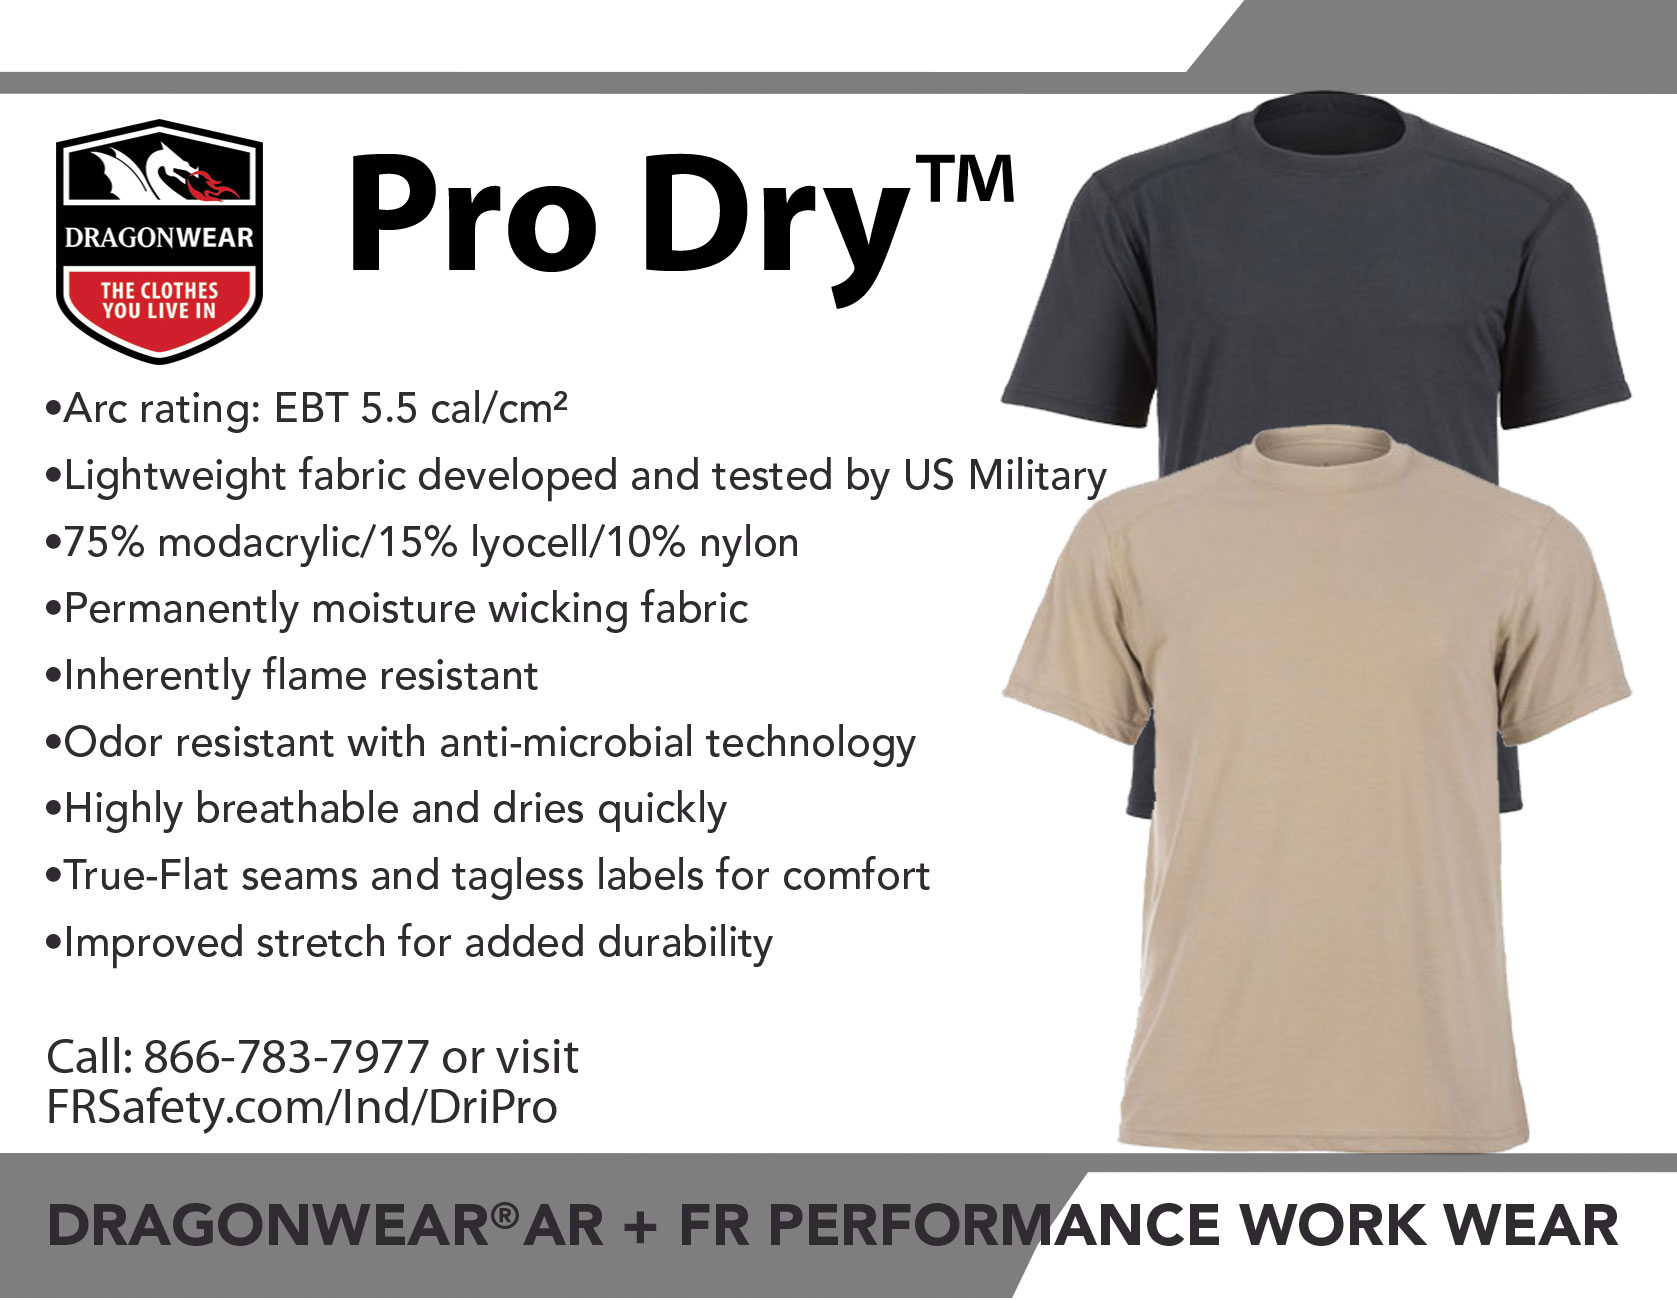 34e1bf4d62 FRS: What is your favorite feature of the Pro Dry™ shirt? DS: The soft  hand. It is so much more comfortable against your skin than the previous  shirt.